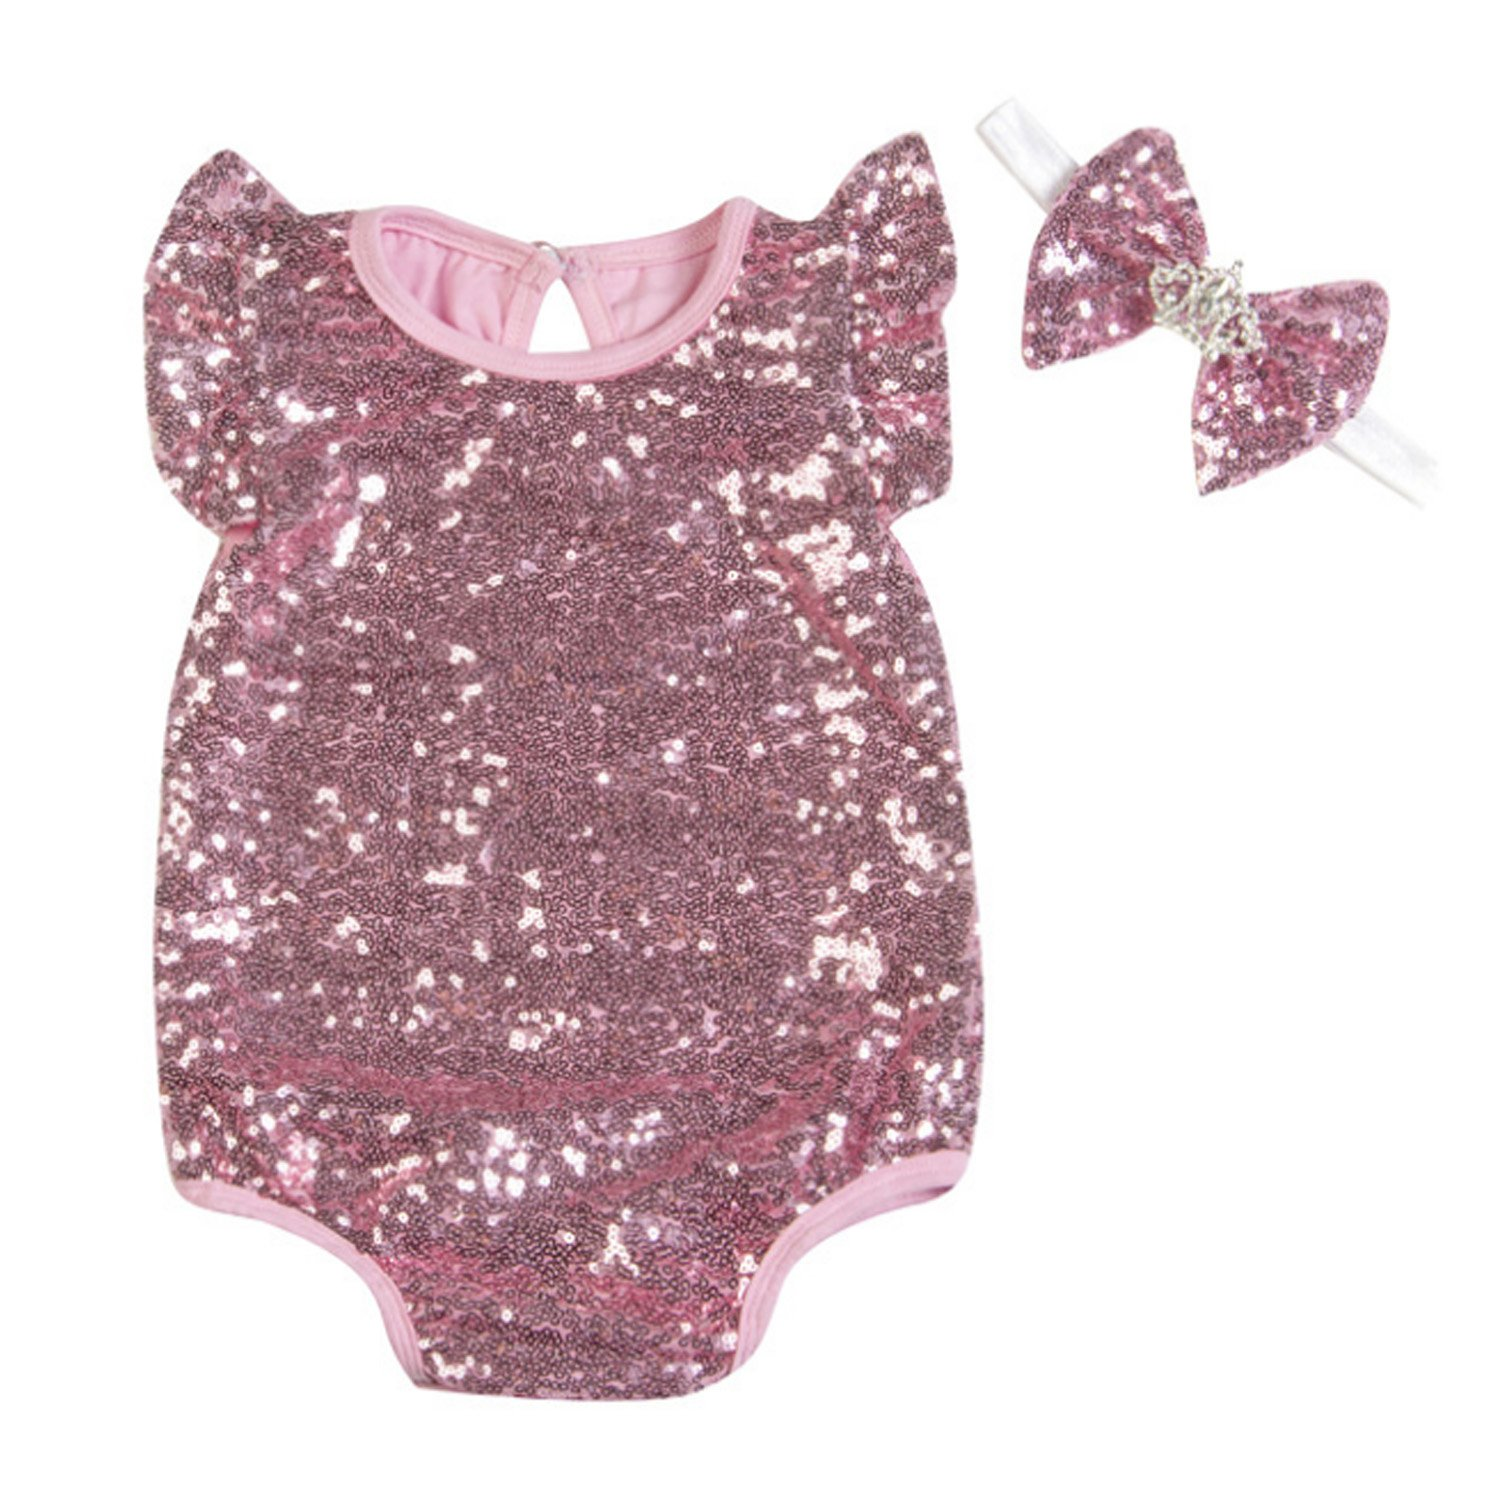 d7bc4576b60 Amazon.com  Coodebear Baby Girls  Romper Climb Clothes Onesies Sequined  Jumpsuit Dress Suit  Clothing